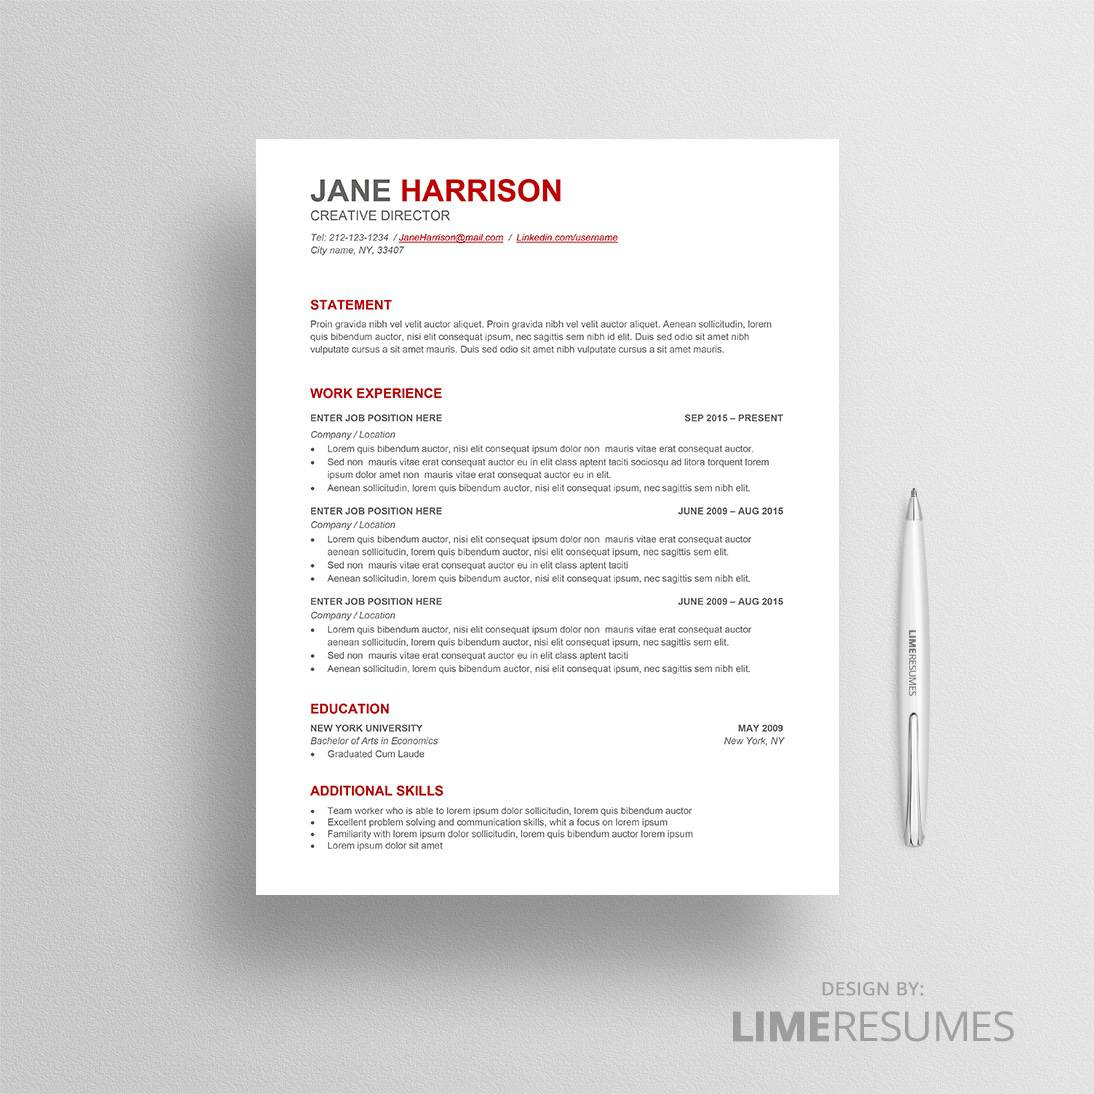 Resume examples for job seekers in any industry for Best free ats